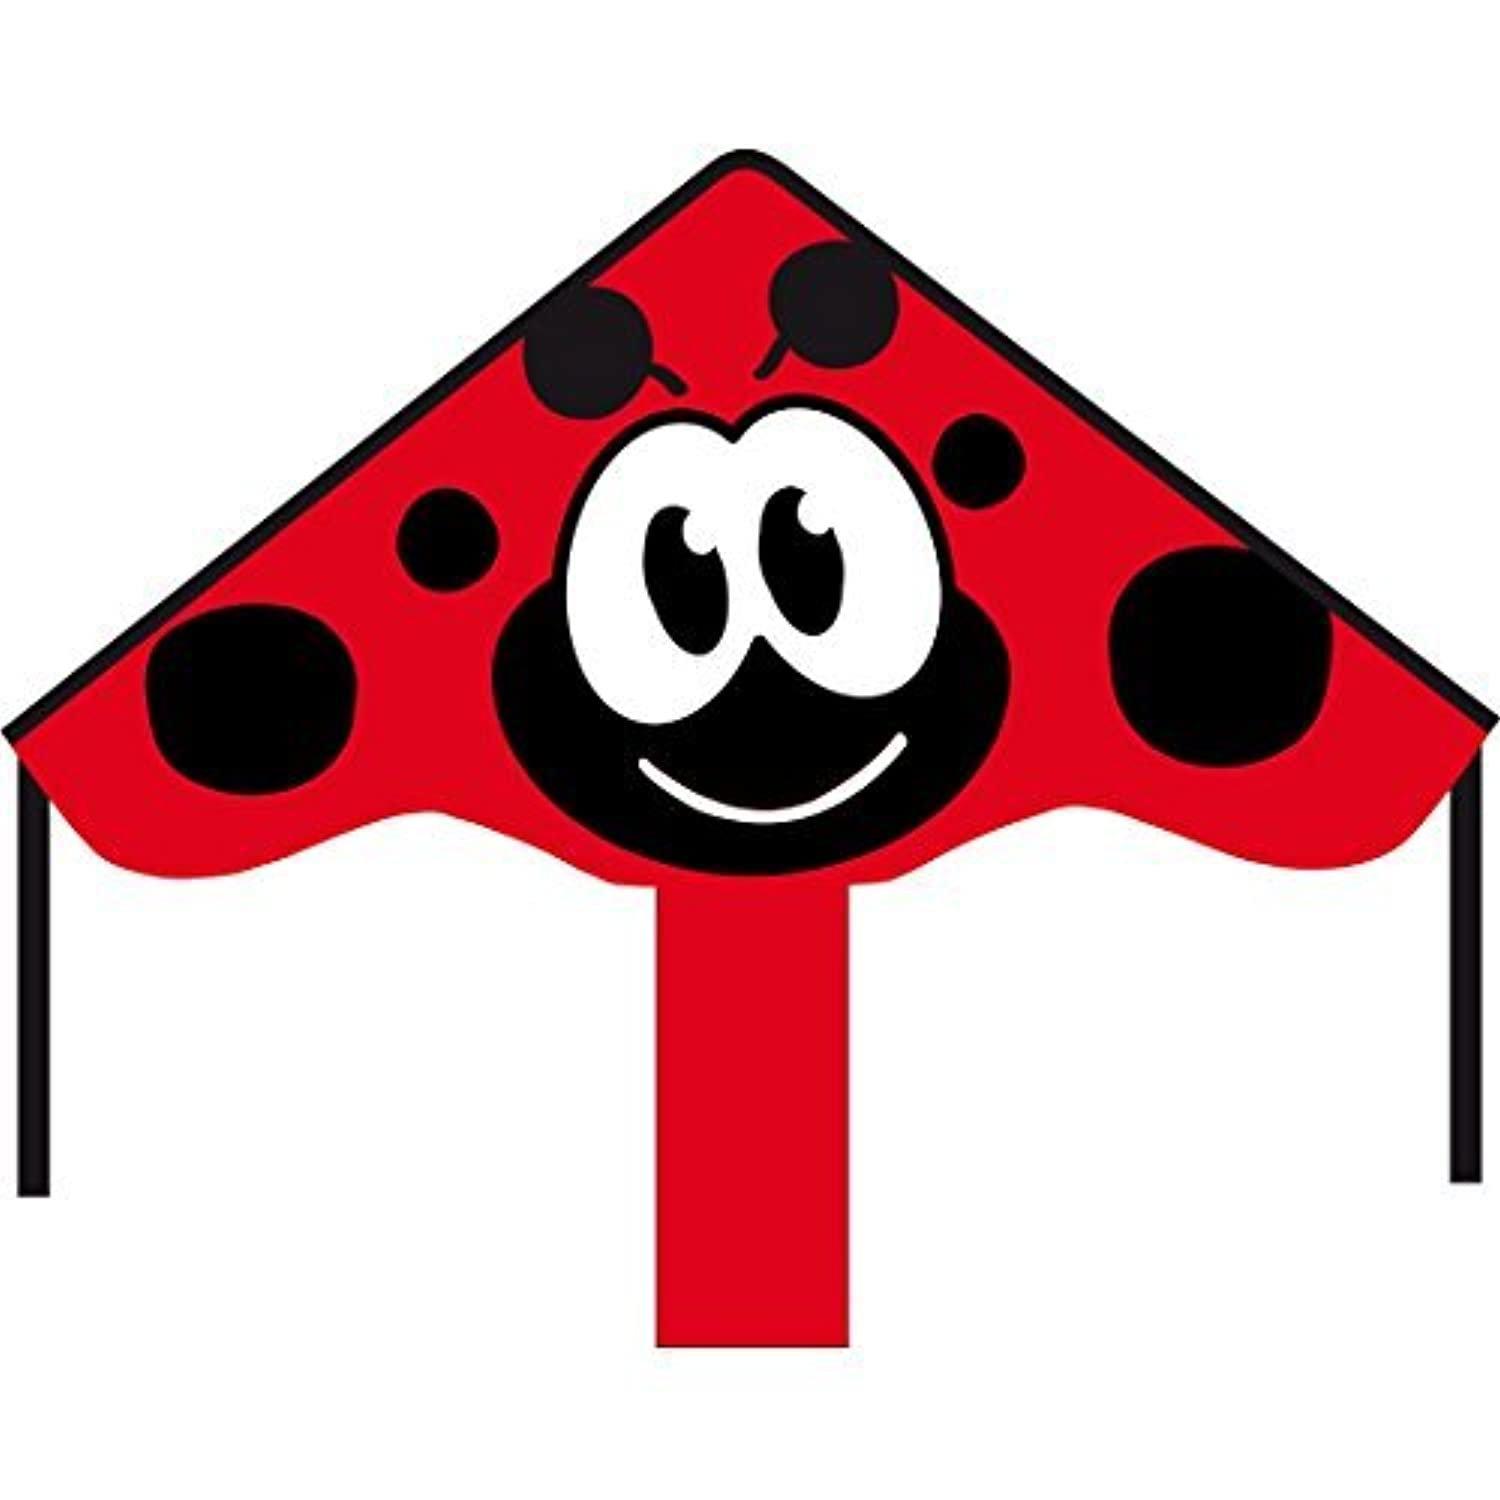 HQ Kites Simple Flyer Ladybug Kite, 33 by HQ Kites and Designs